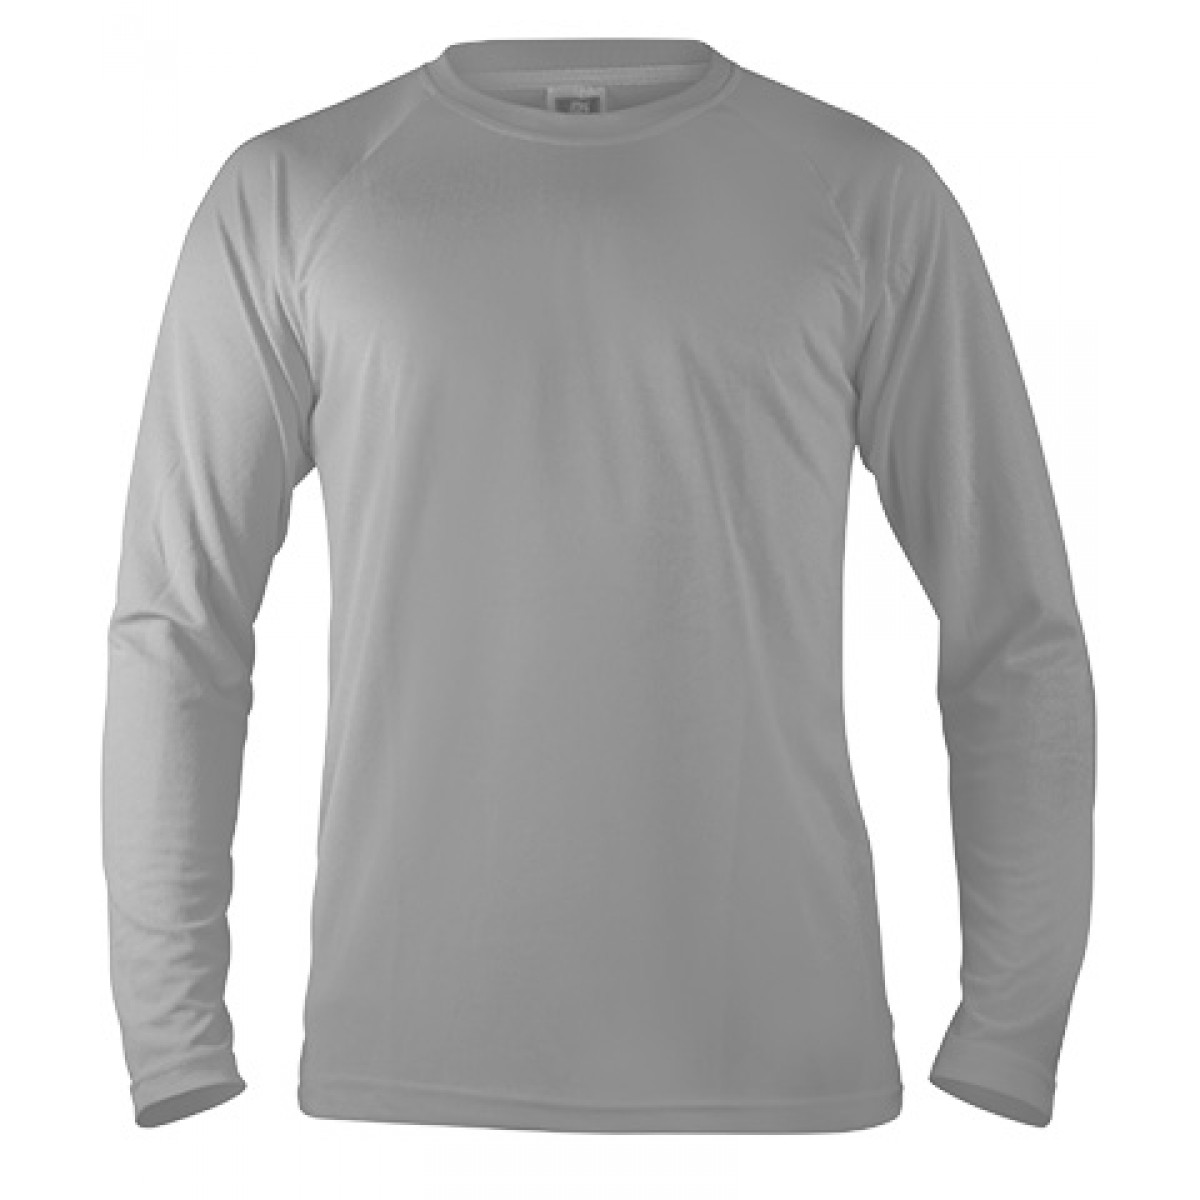 Long Sleeve Performance -Gray -YS